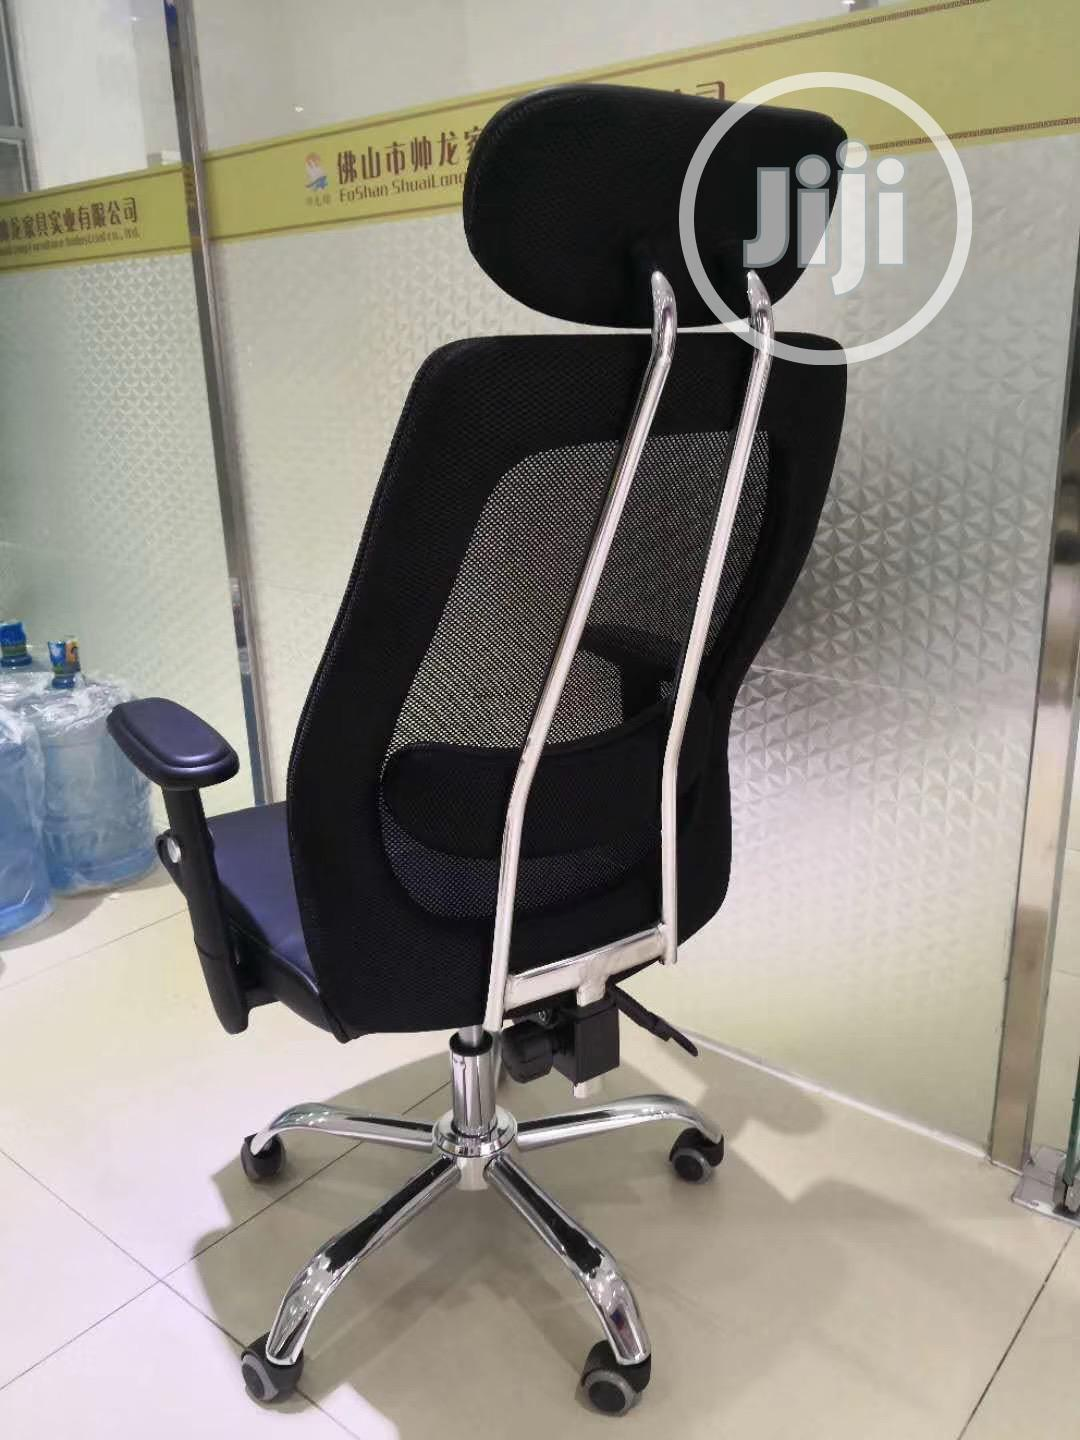 Picture of: Net And Leather Office Swivel Chair In Wuse Furniture Osita Chukwuma Jiji Ng For Sale In Wuse Buy Furniture From Osita Chukwuma On Jiji Ng